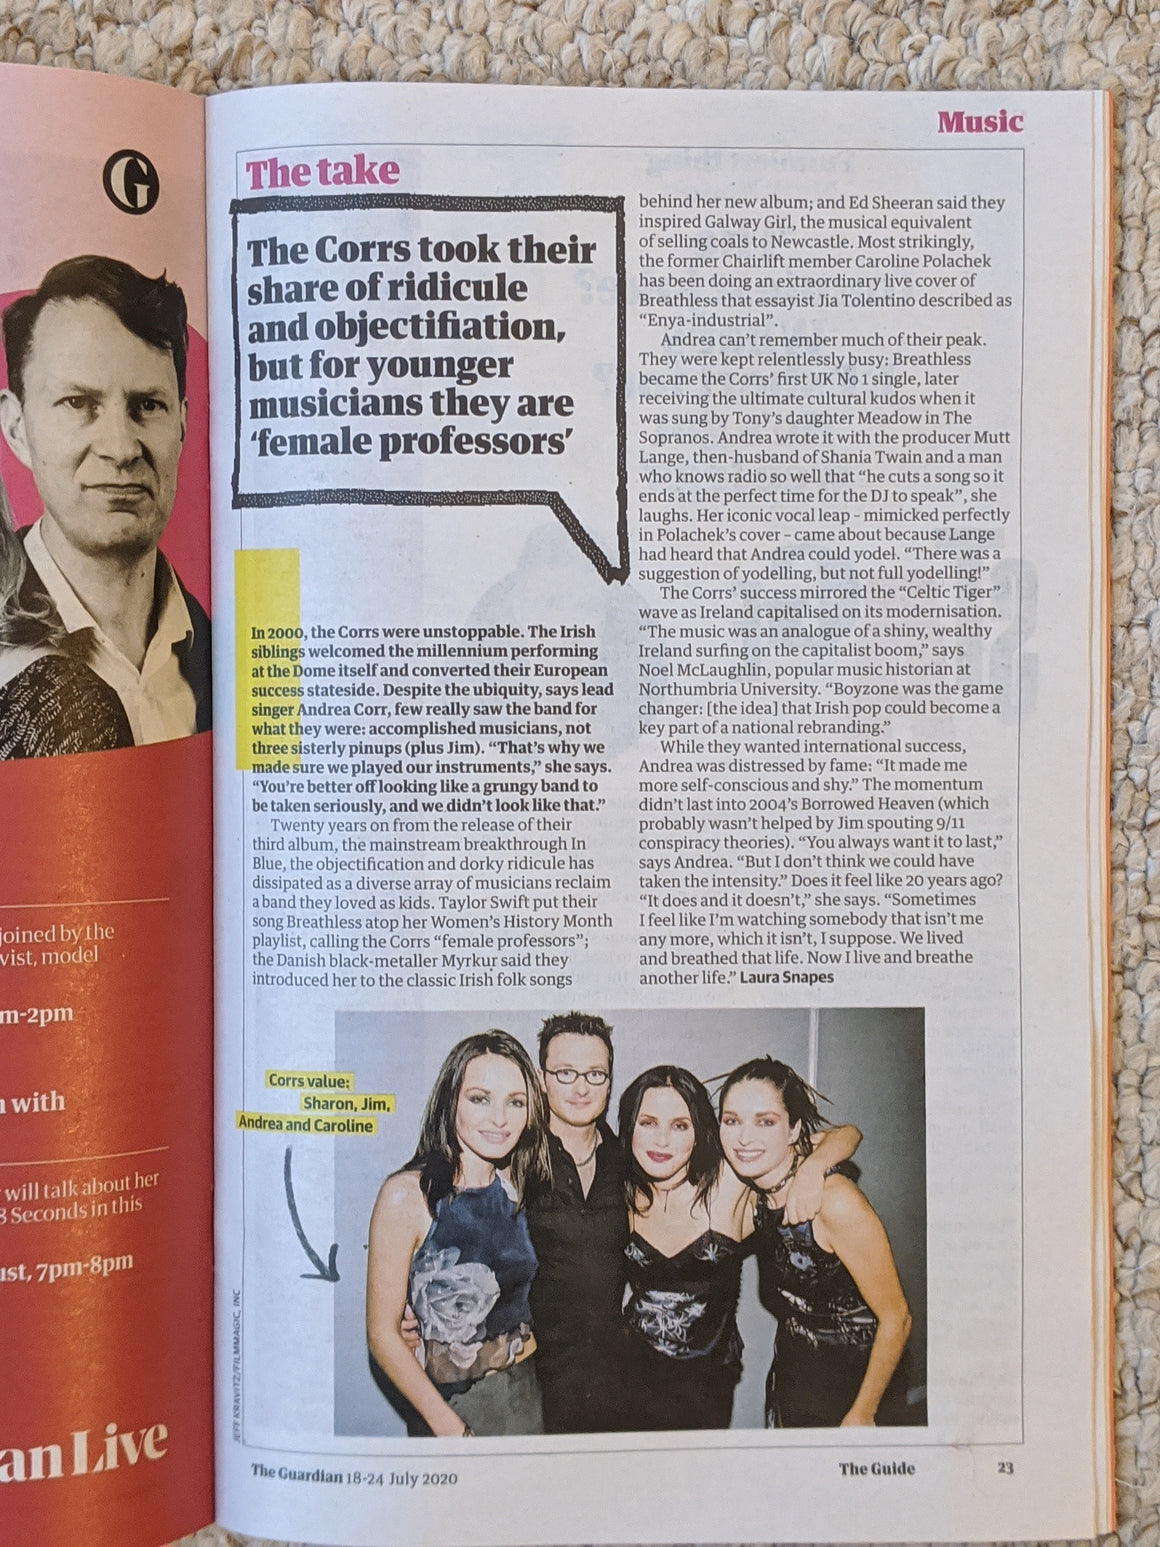 GUIDE Magazine July 2020: THE CORRS FEATURE ANDREA CORR SHARON CORR